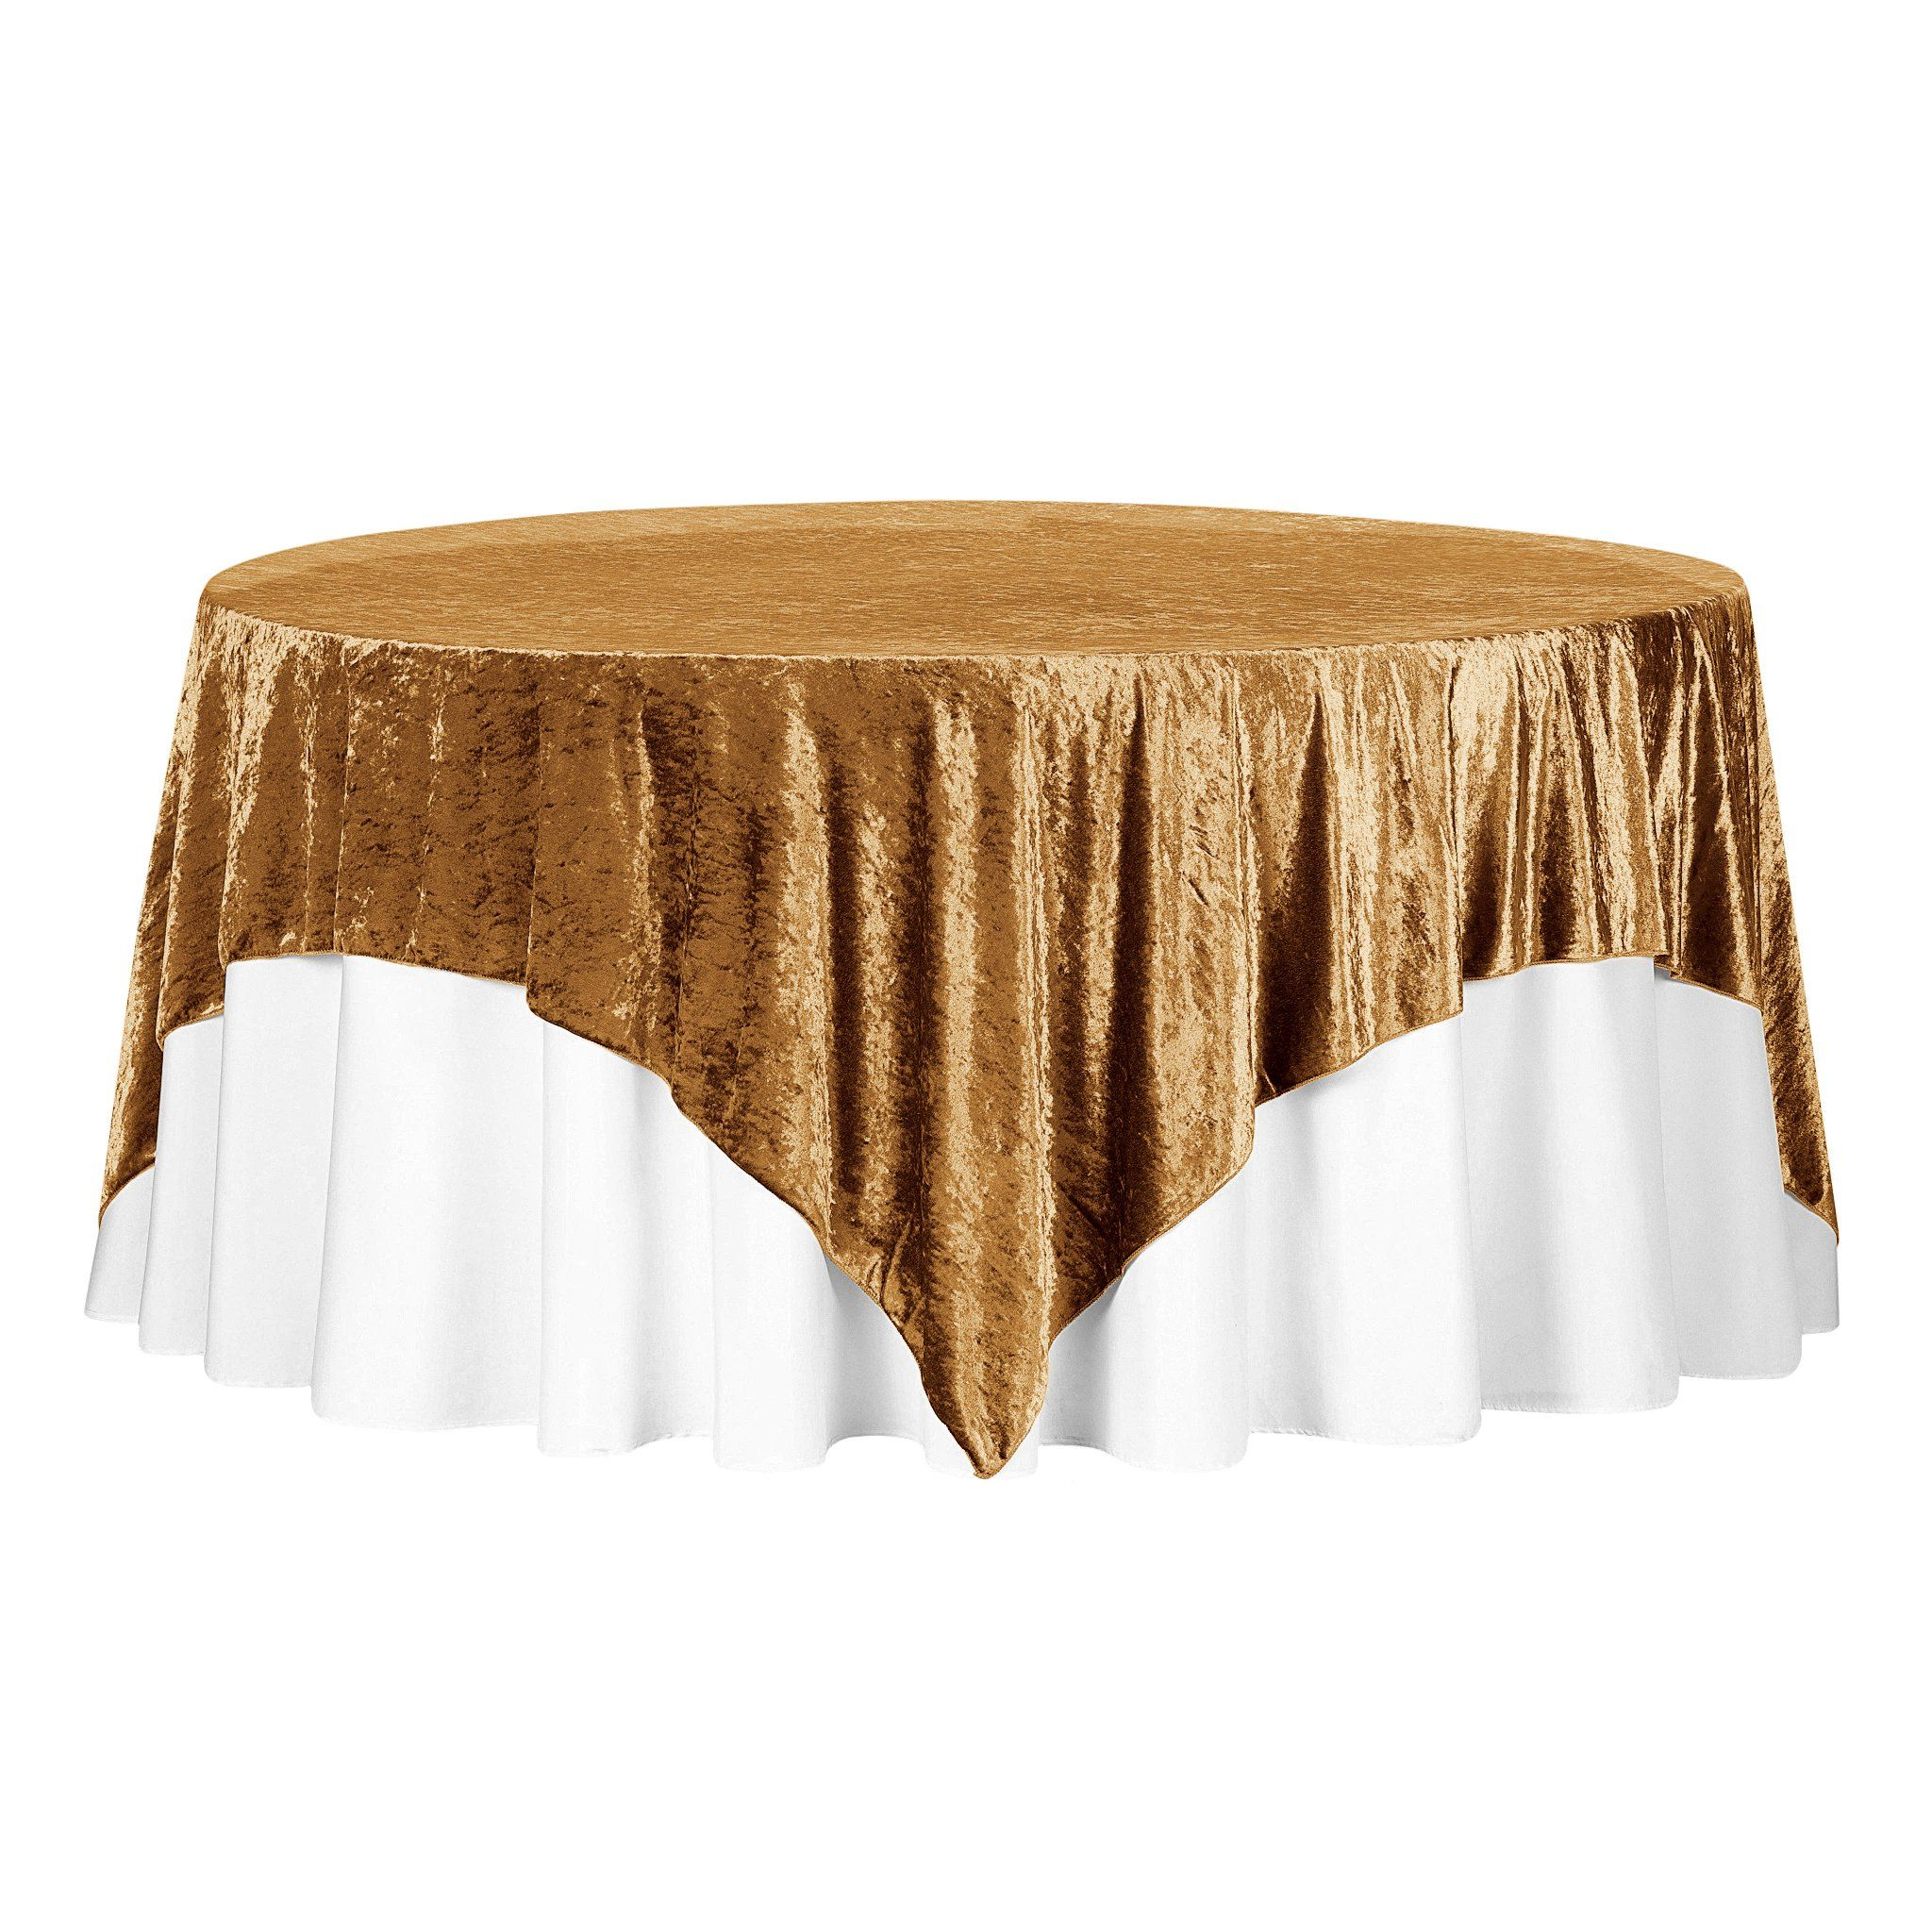 Velvet 85 X85 Square Tablecloth Table Overlay Mustard Gold In 2020 Table Overlays Square Tablecloth Event Decor Direct